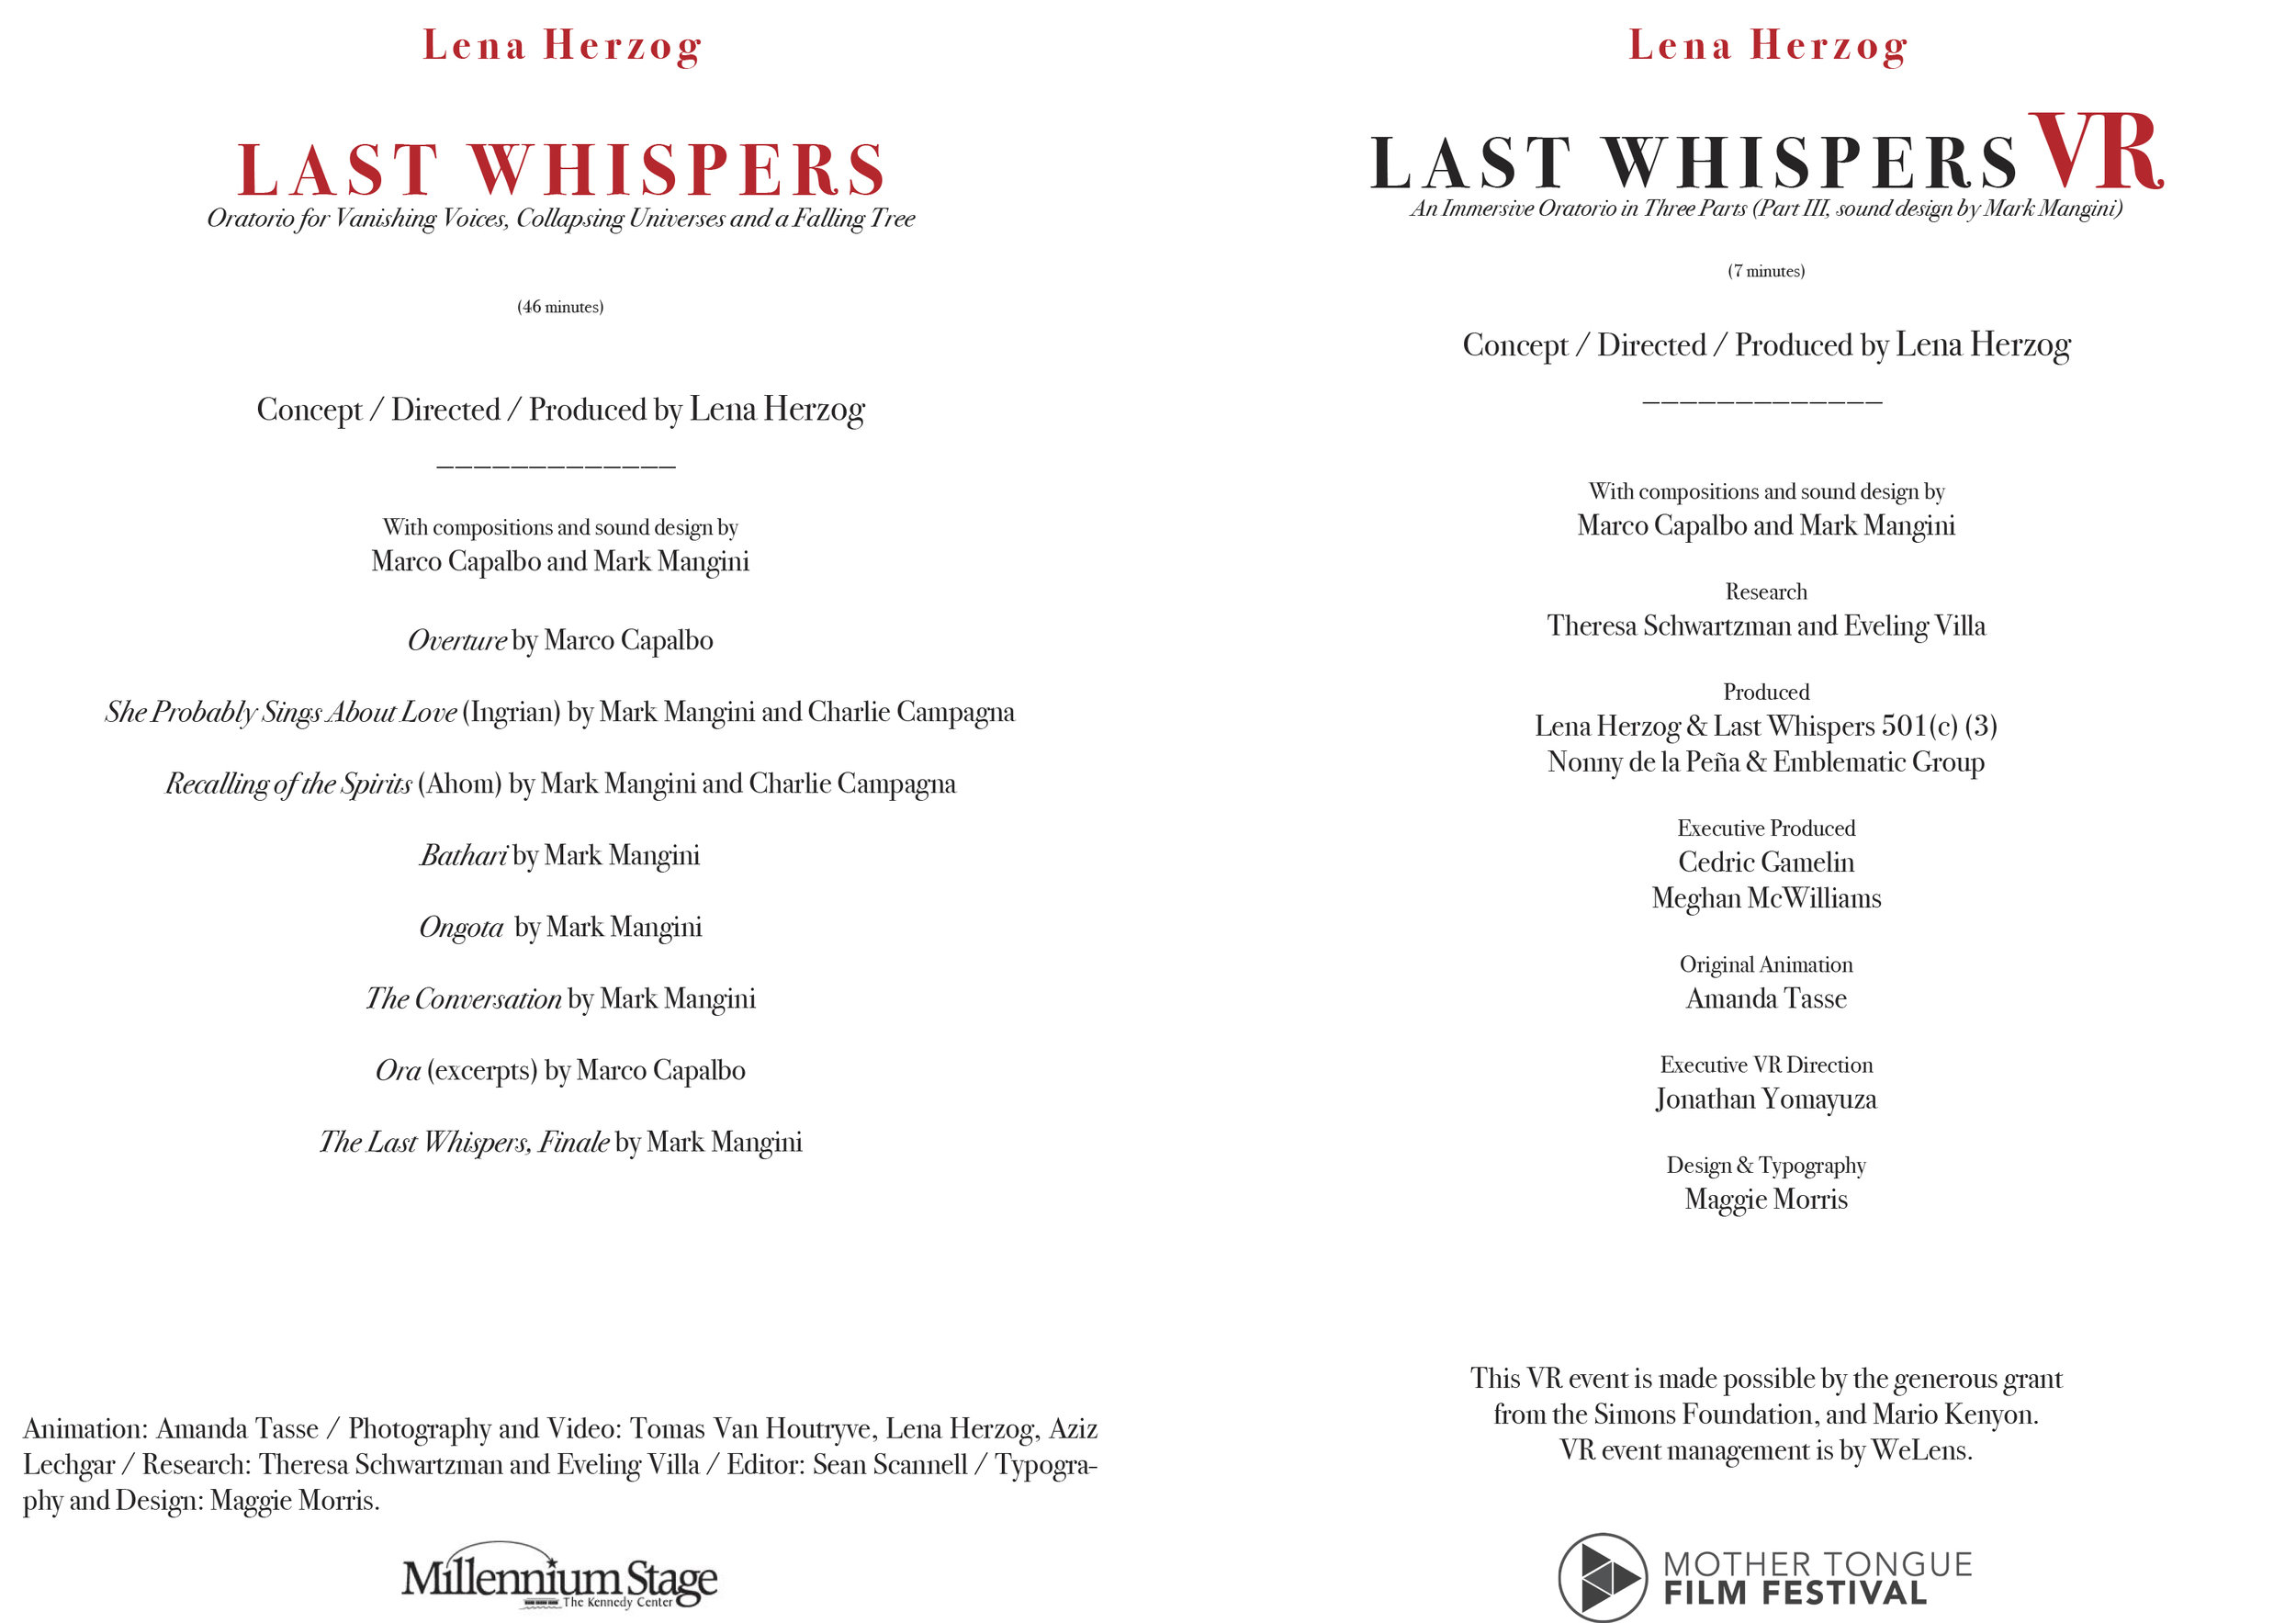 LastWhispers_KennedyCenter_Program-2.jpg